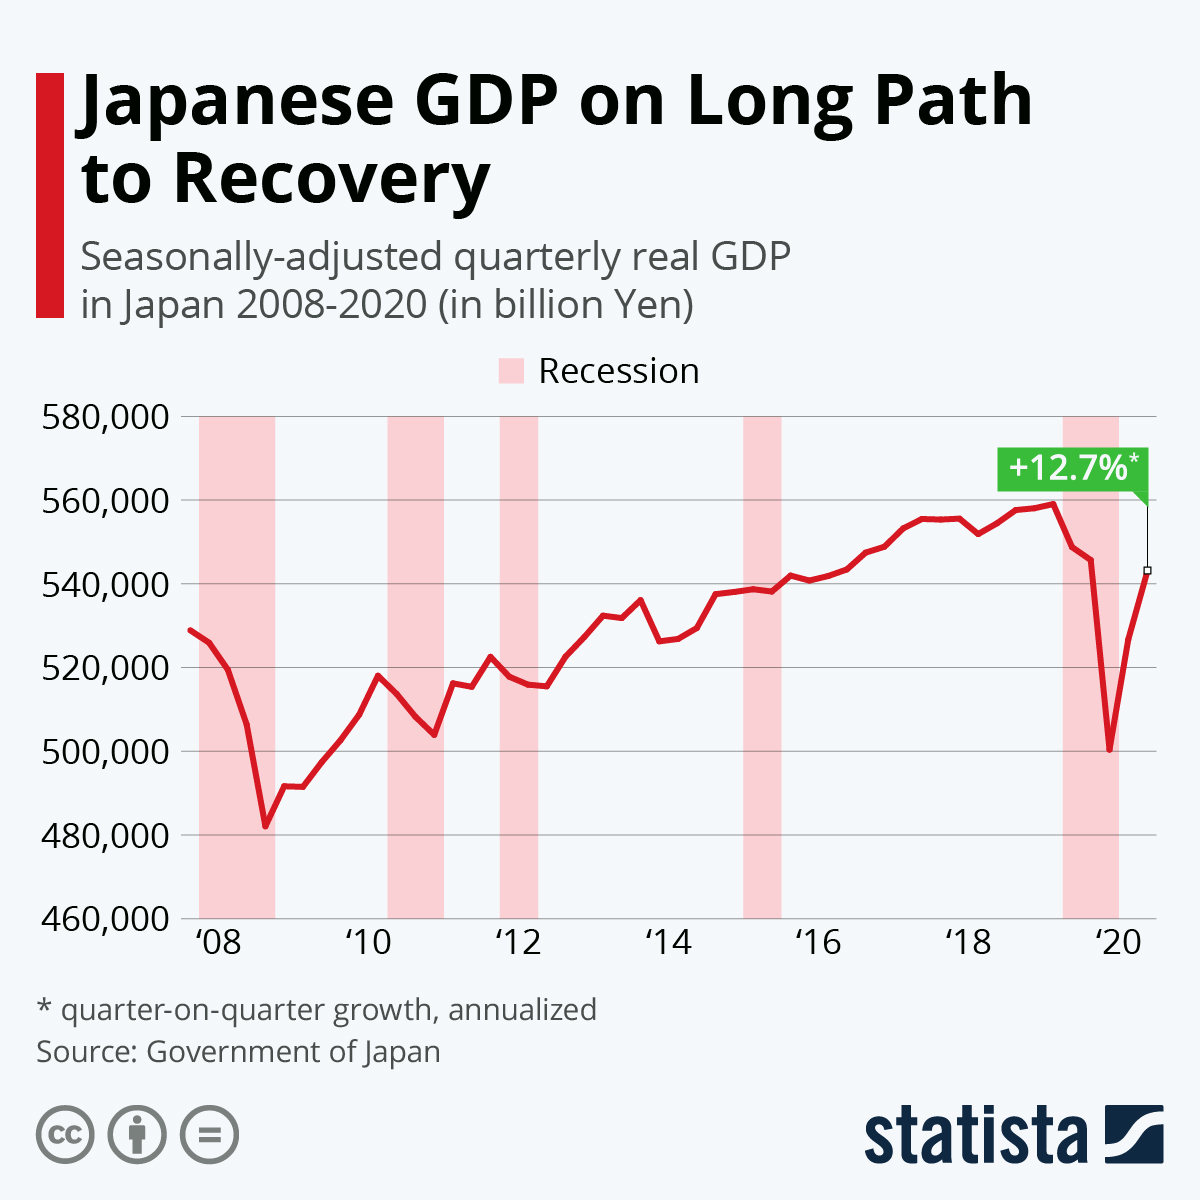 Japanese GDP inches towards recovery